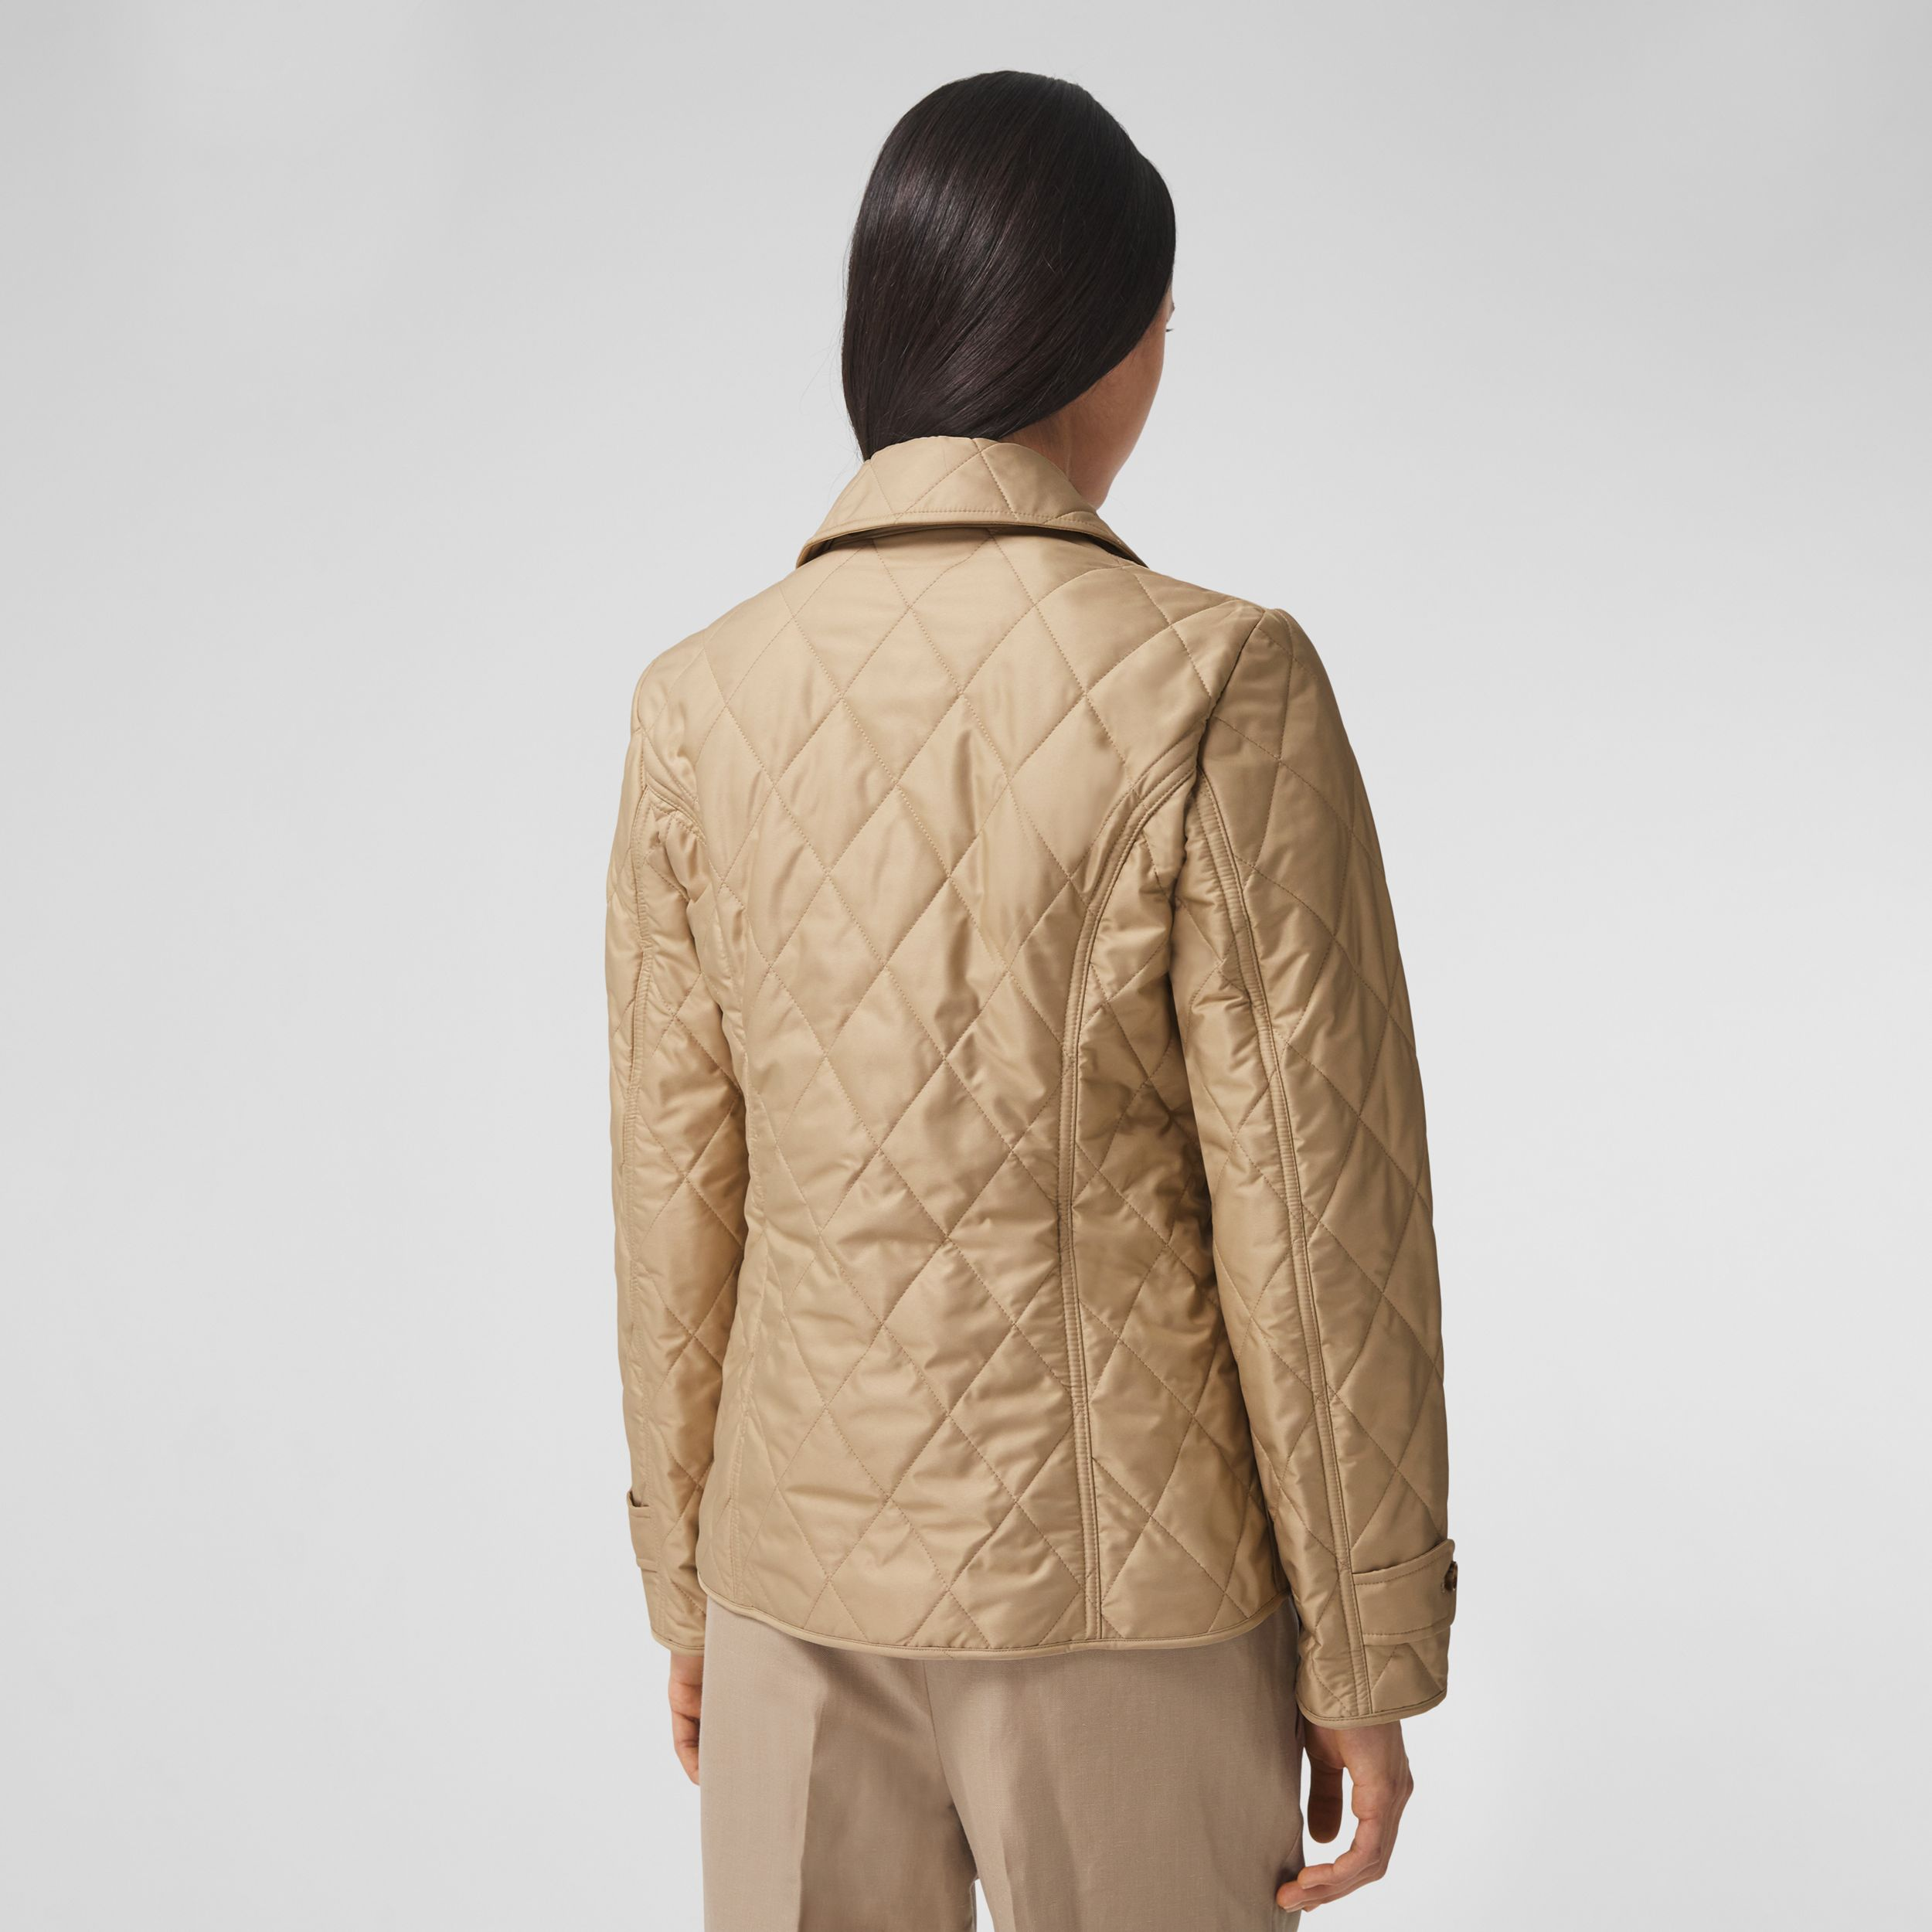 Diamond Quilted Thermoregulated Jacket in New Chino - Women | Burberry - 3